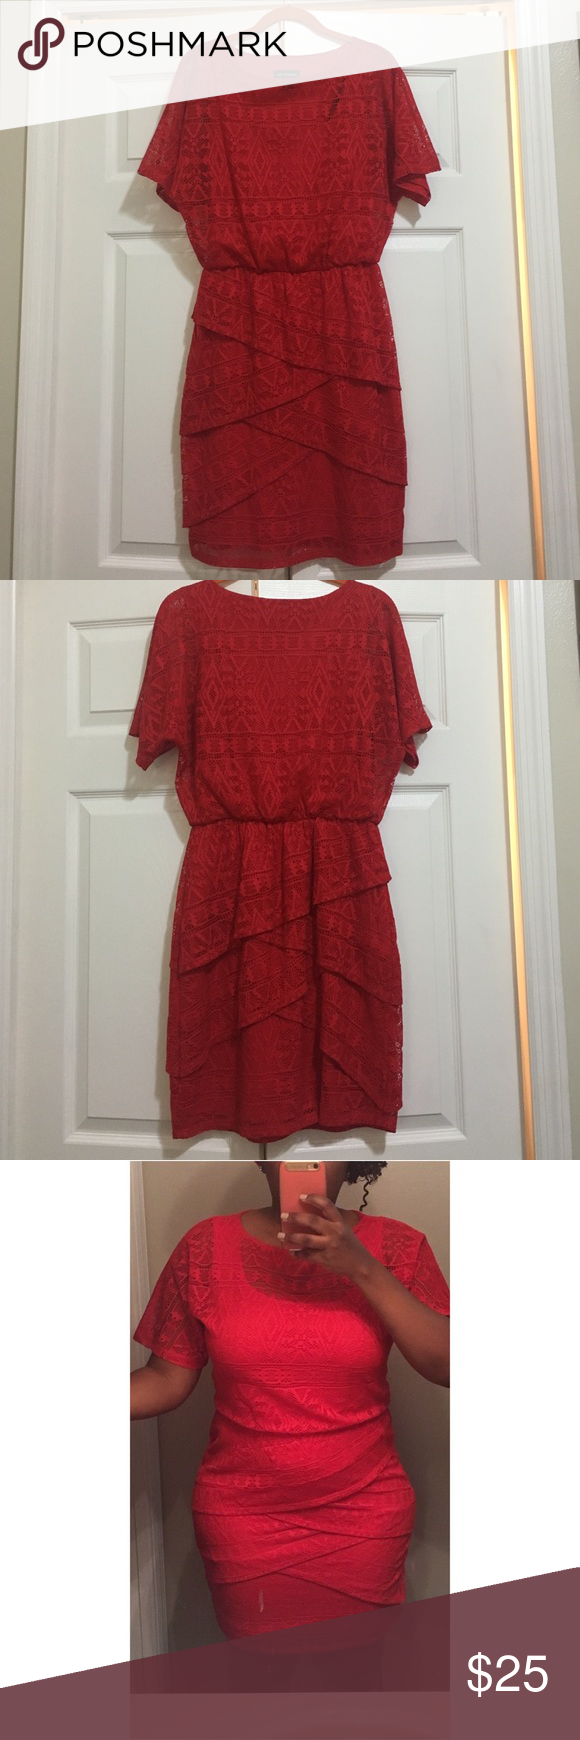 Bright red lace overlay dress Beautiful short dress with lace all over. Can be worn with flat sandals, 👠 or boots. New without tags, never worn. Reasonable offers accepted! I.N. Studio Dresses Mini